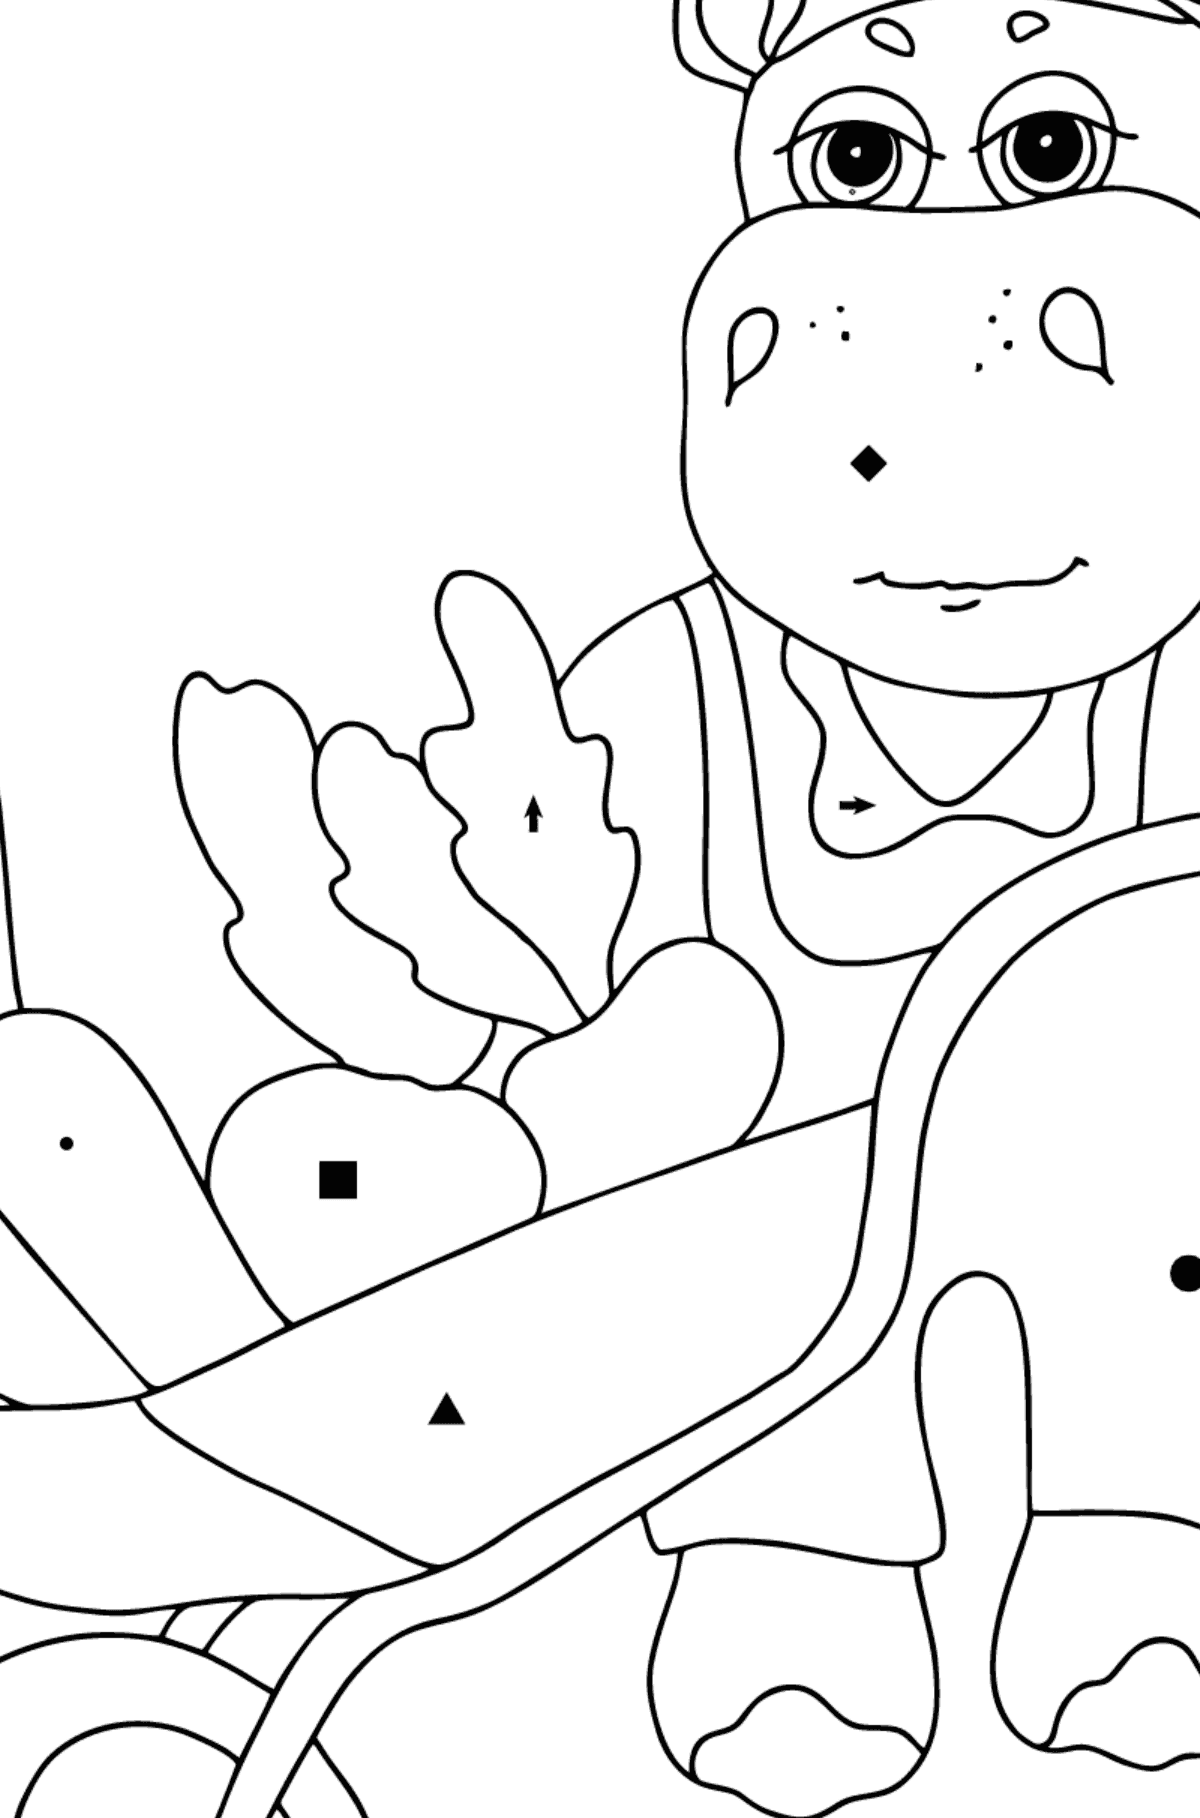 Coloring Page - A Hippo with a Cart for Kids  - Color by Special Symbols